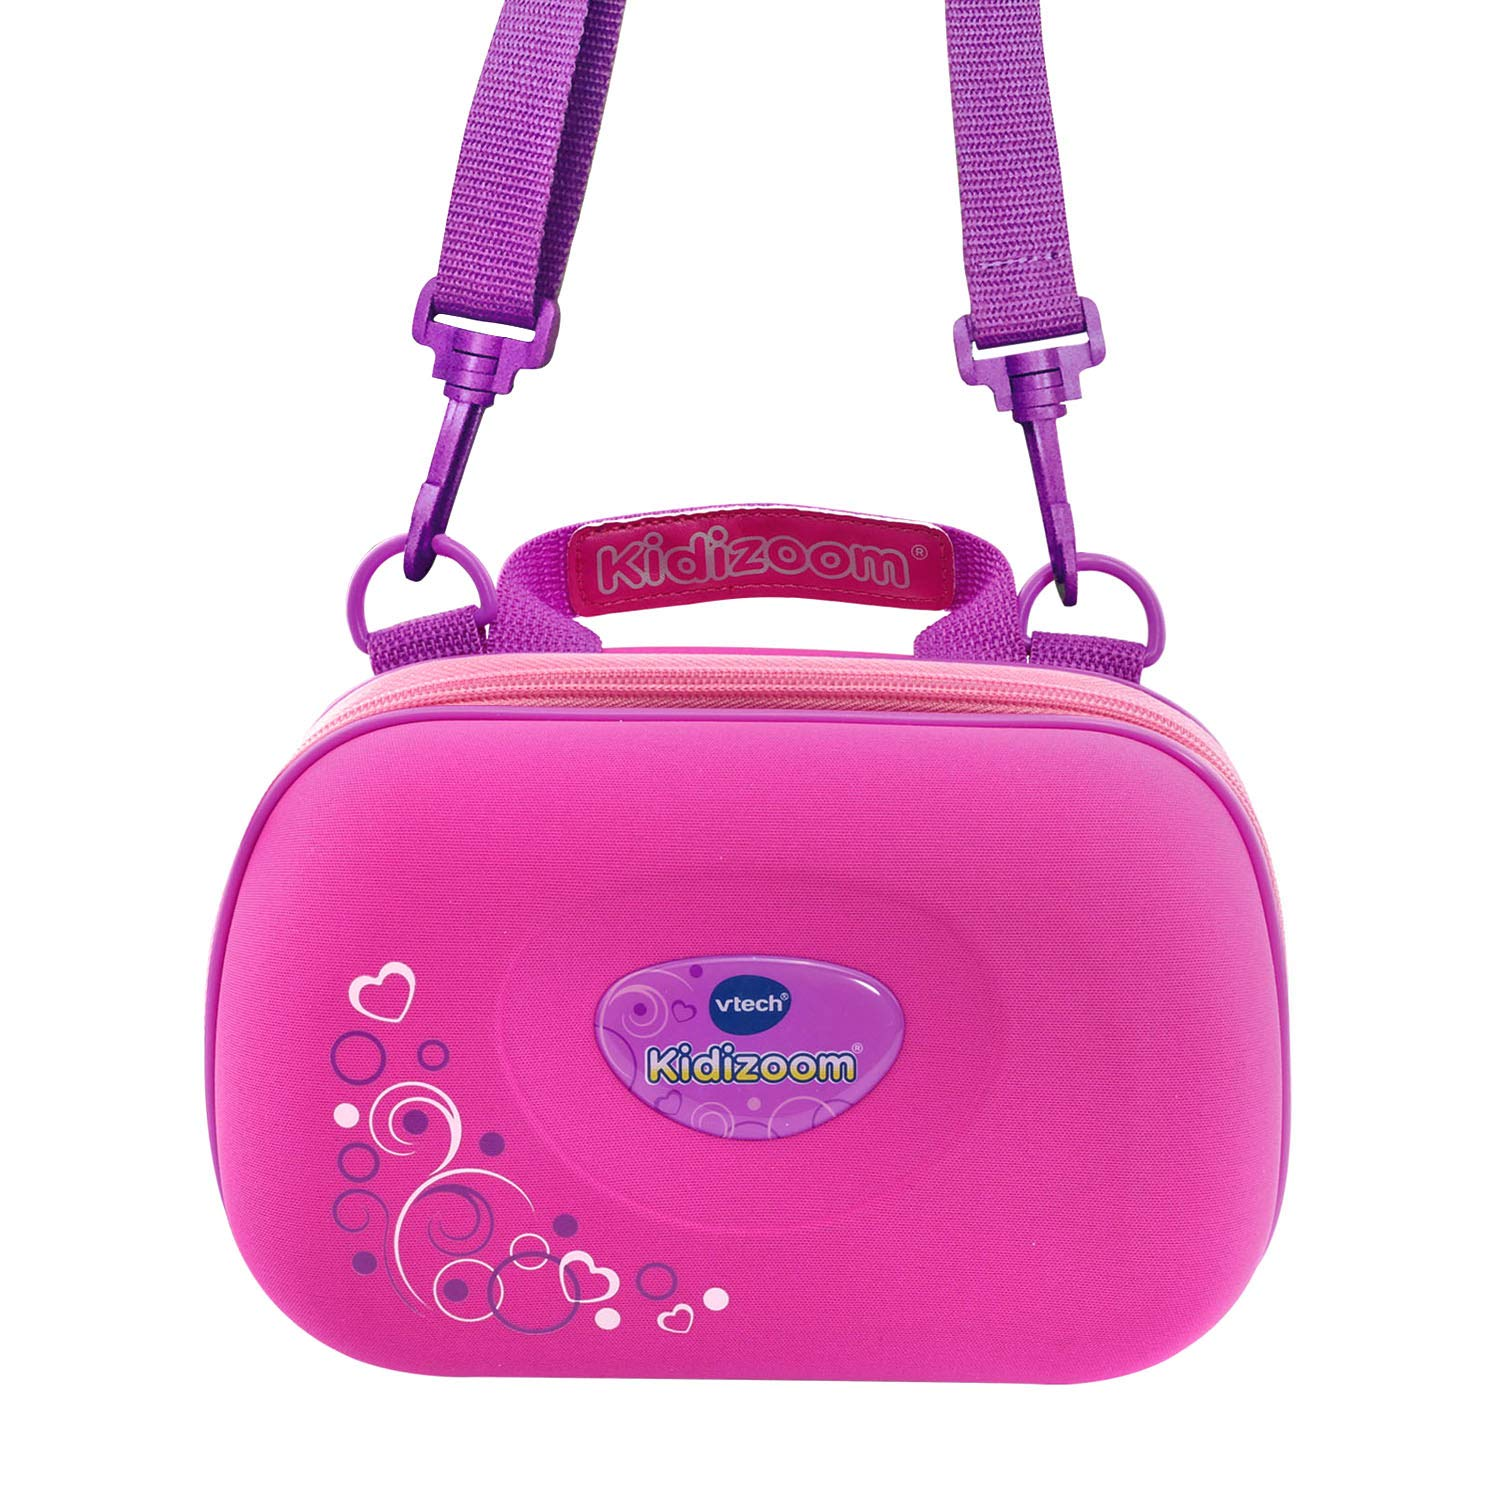 VTech Kidizoom Carrying Case, Pink by VTech (Image #3)